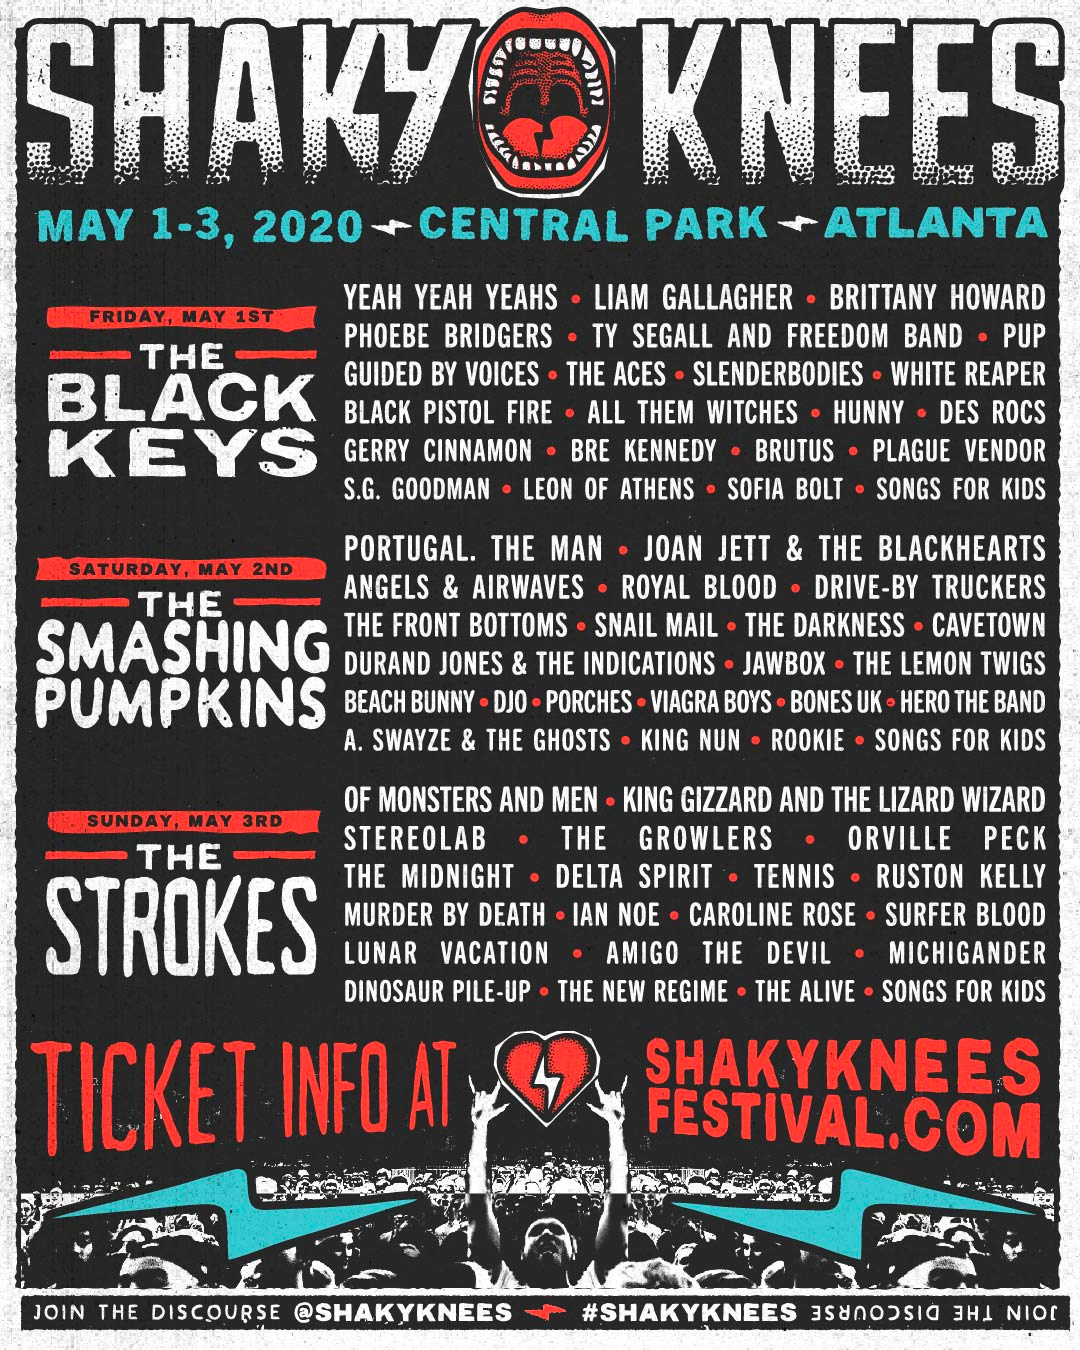 Shaky Knees Music Festival Atlanta 2020 Lineup